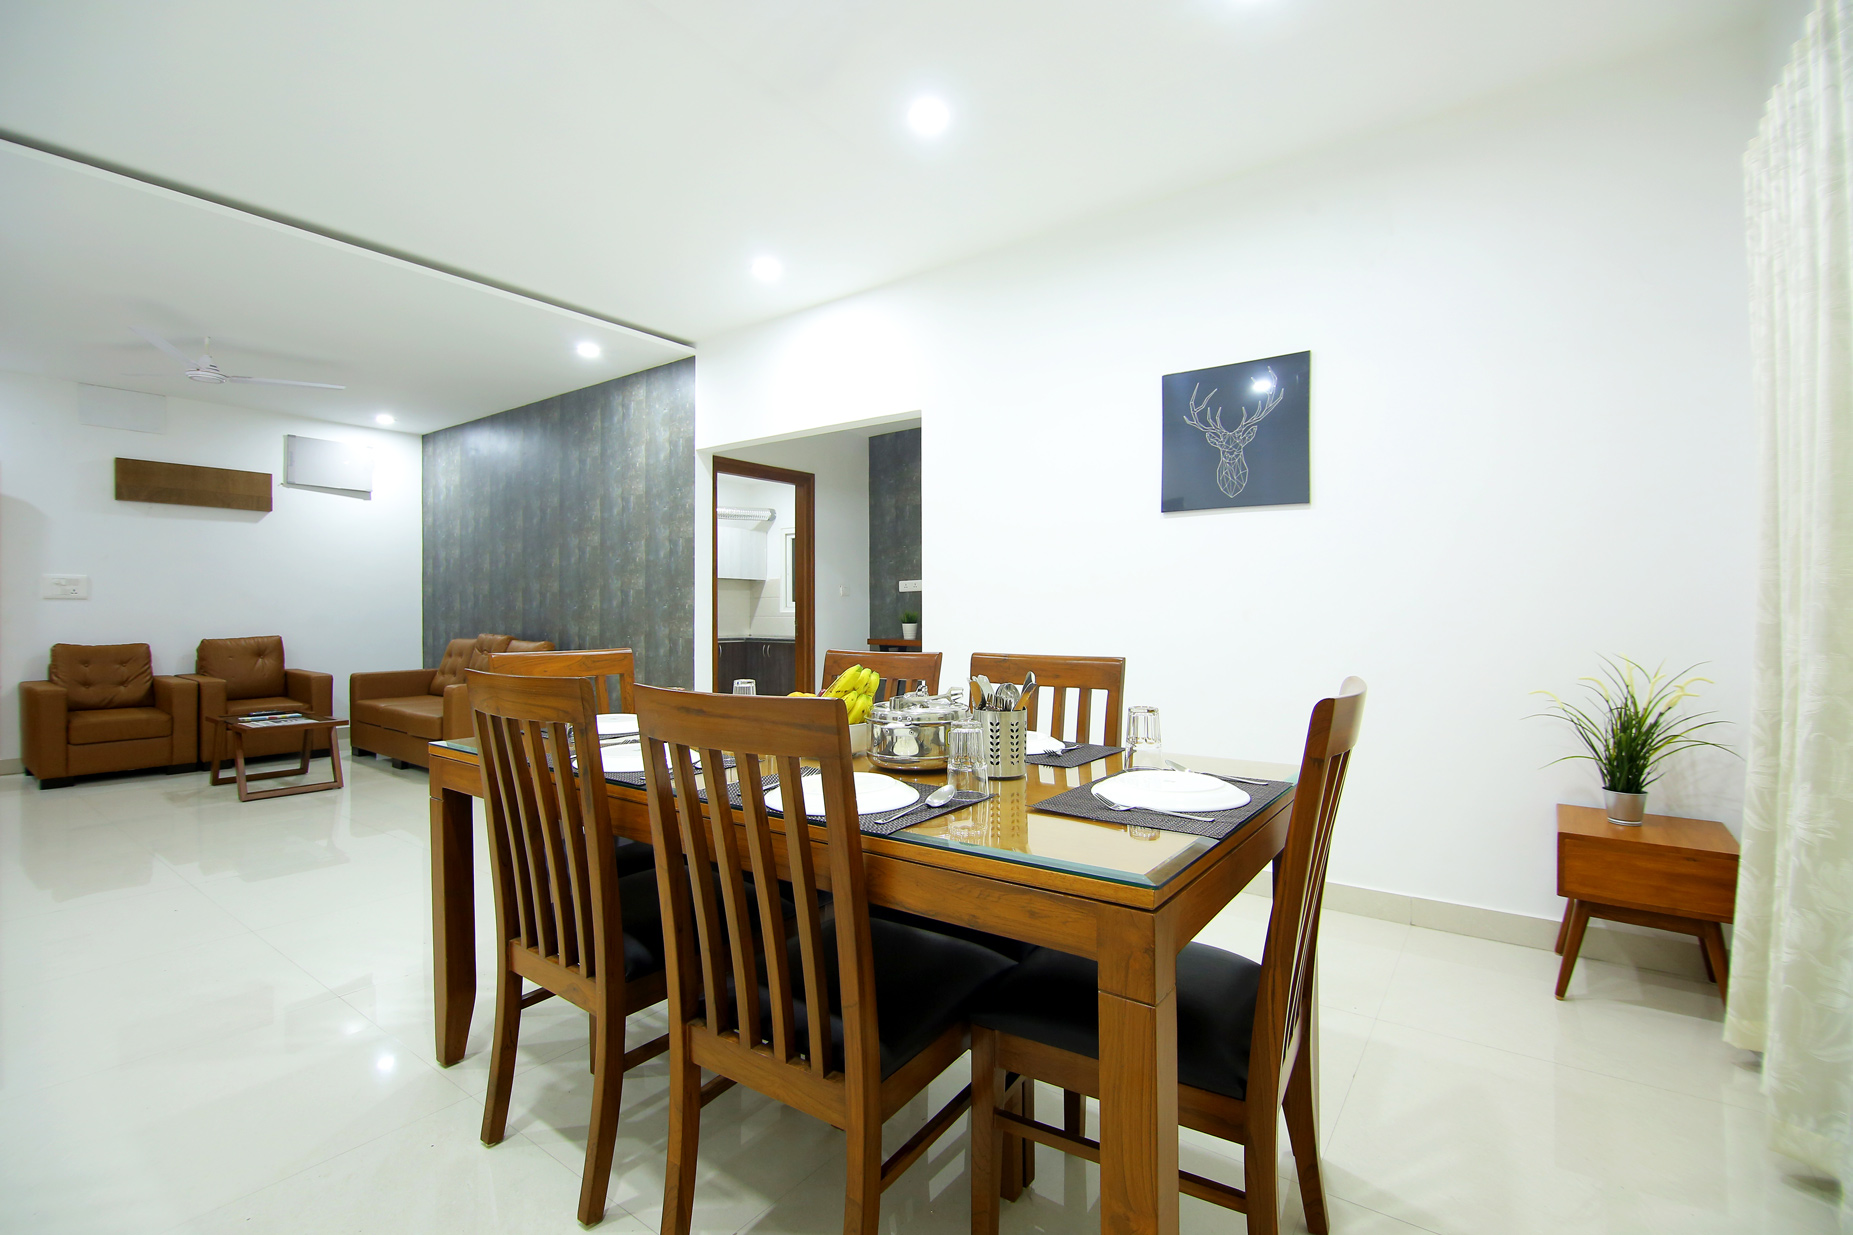 skyla-service-apartment-hyderabad-banjara-hills-bluefox-restaurant-3bhk5.jpg